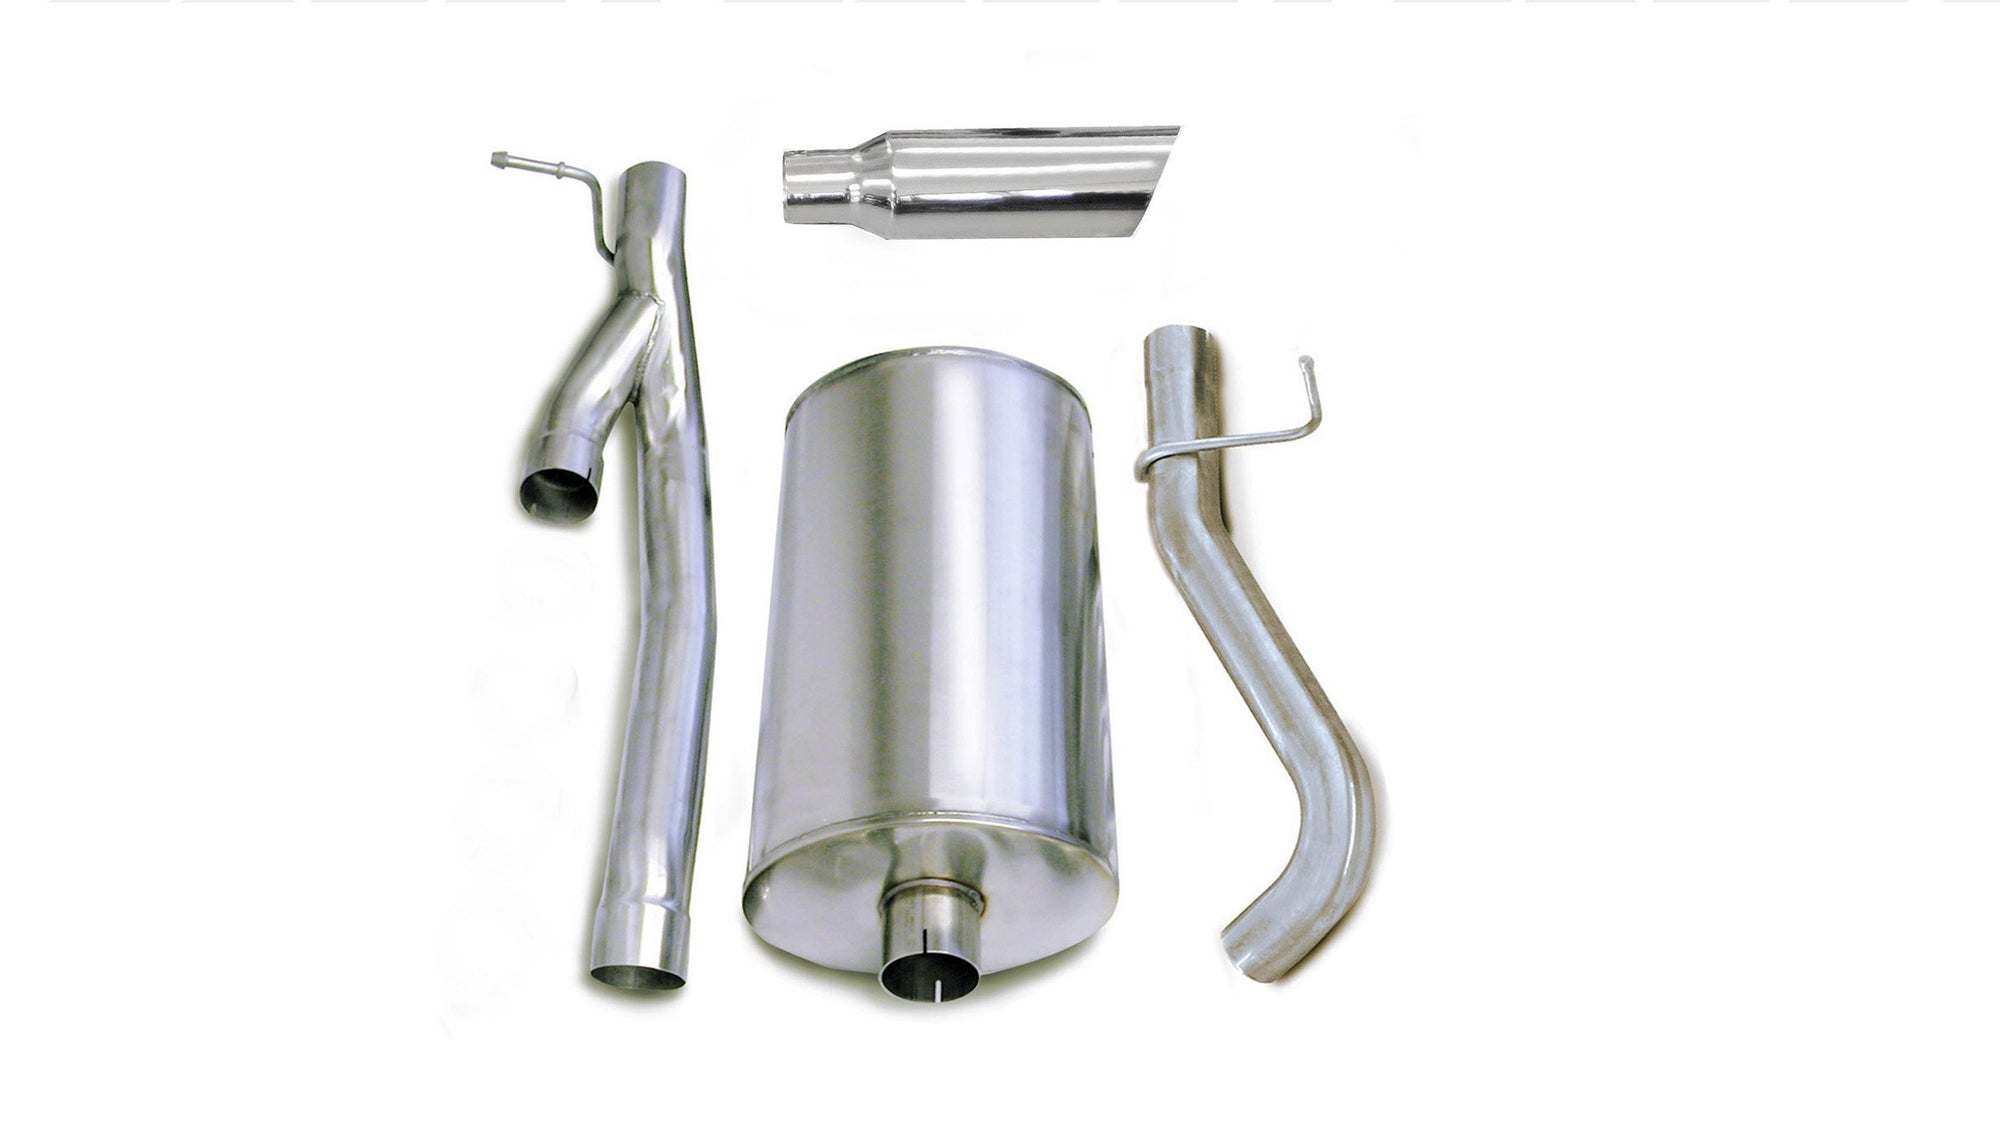 "dB Cat-Back Exhaust Polished / Sport / Single Side - Single 4in 3.0"" Single Side Exit Cat-Back Exhaust System with 4.0"" Tip (24296) Sport Sound Level"